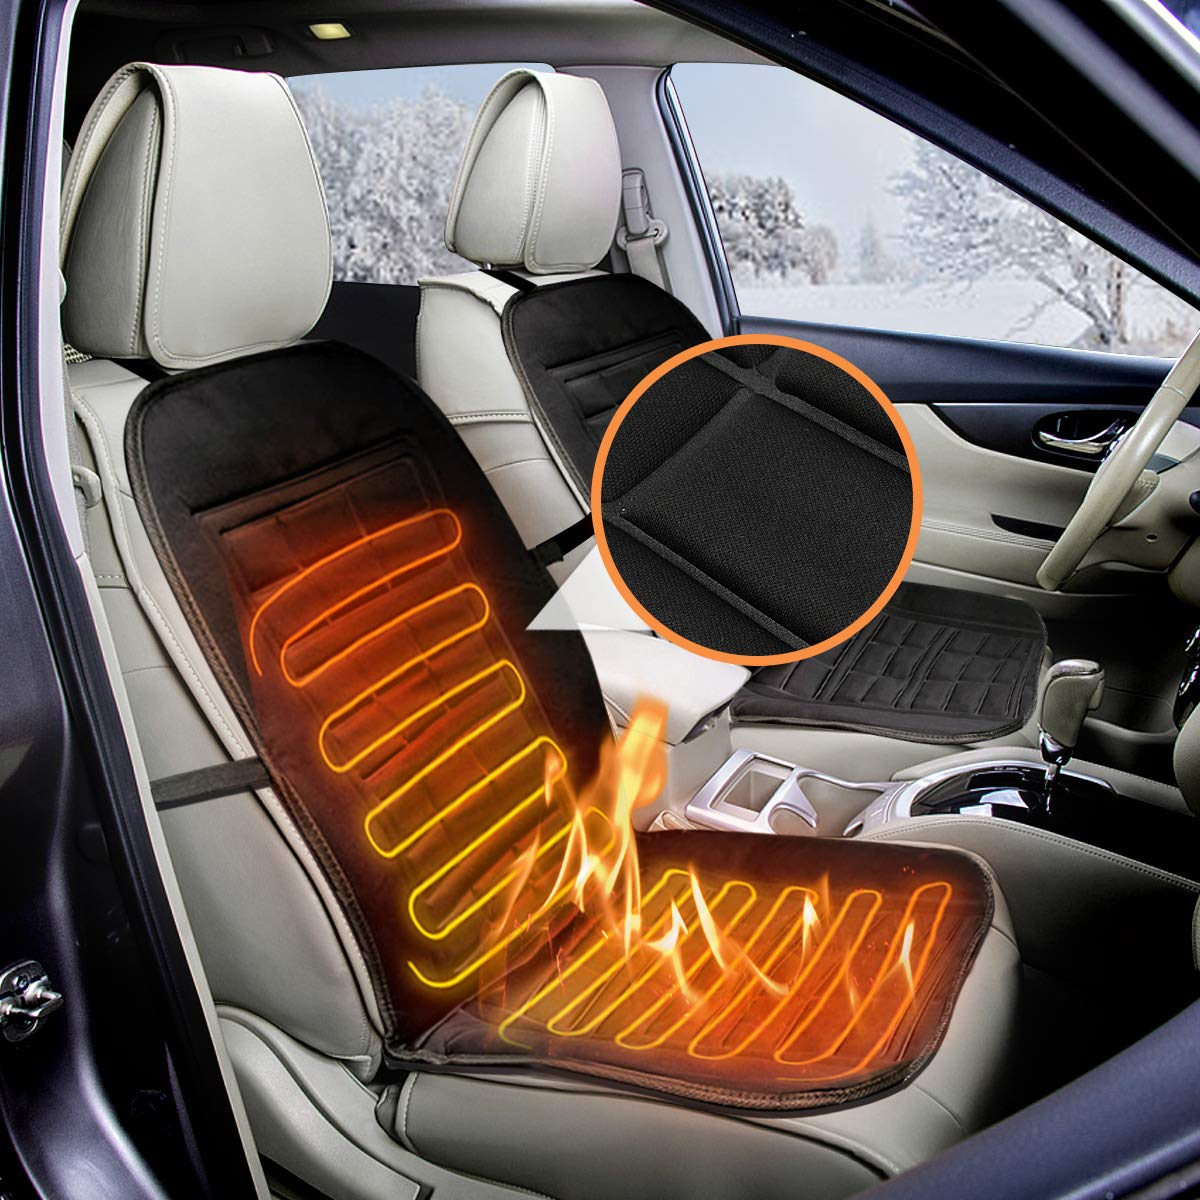 AUDEW Car Heated Seat Cushion Warm Cover Auto 12V Heat Heating Warmer winter Black AUDEWCO. LTD